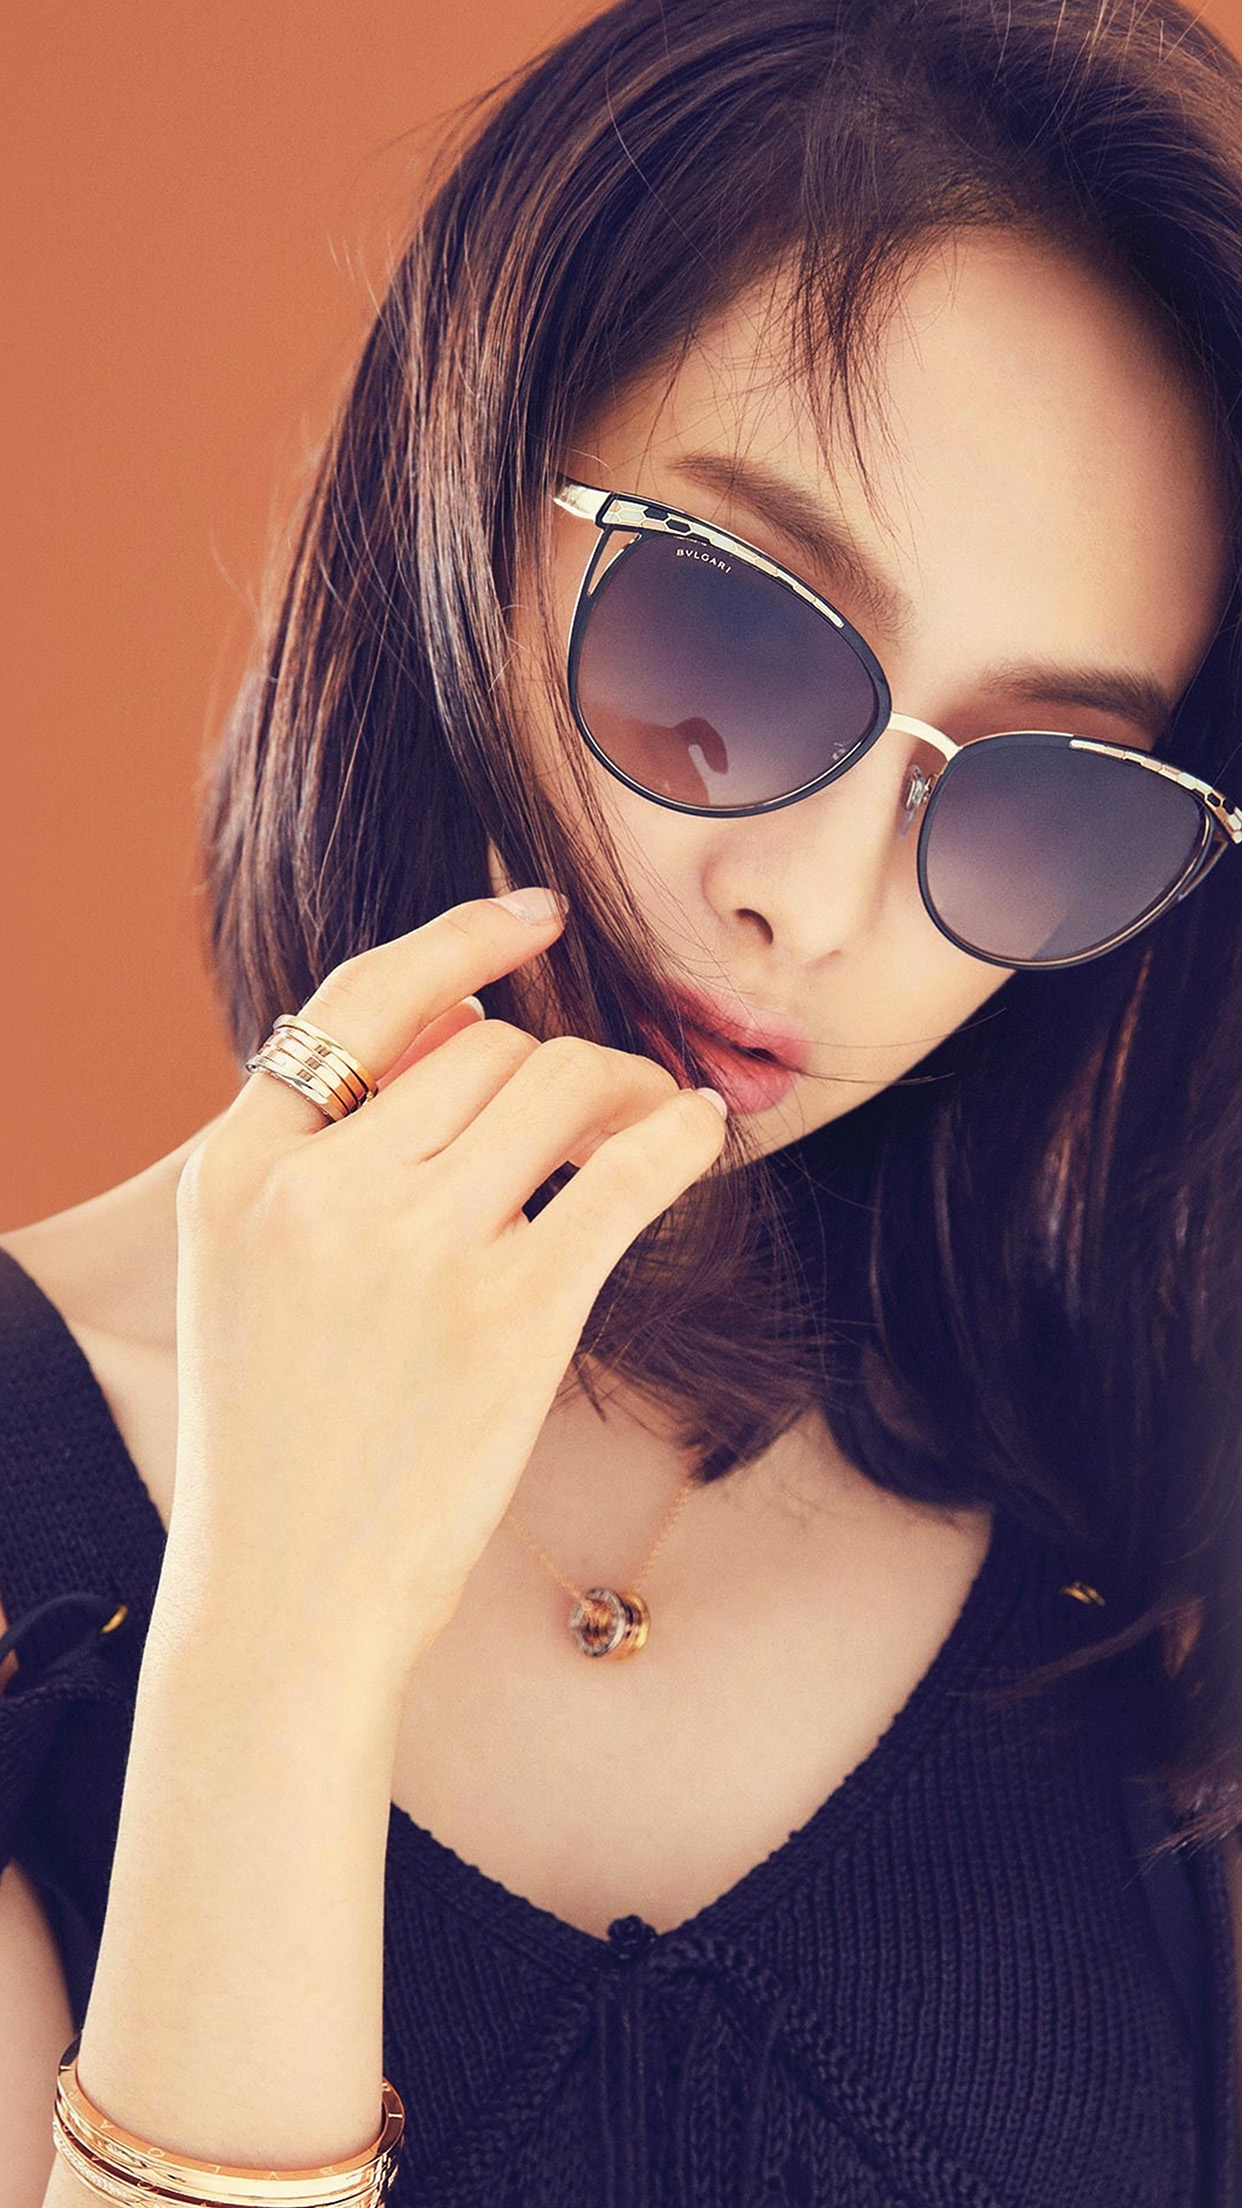 Victoria Kpop Girl Sunglass Beauty Android wallpaper